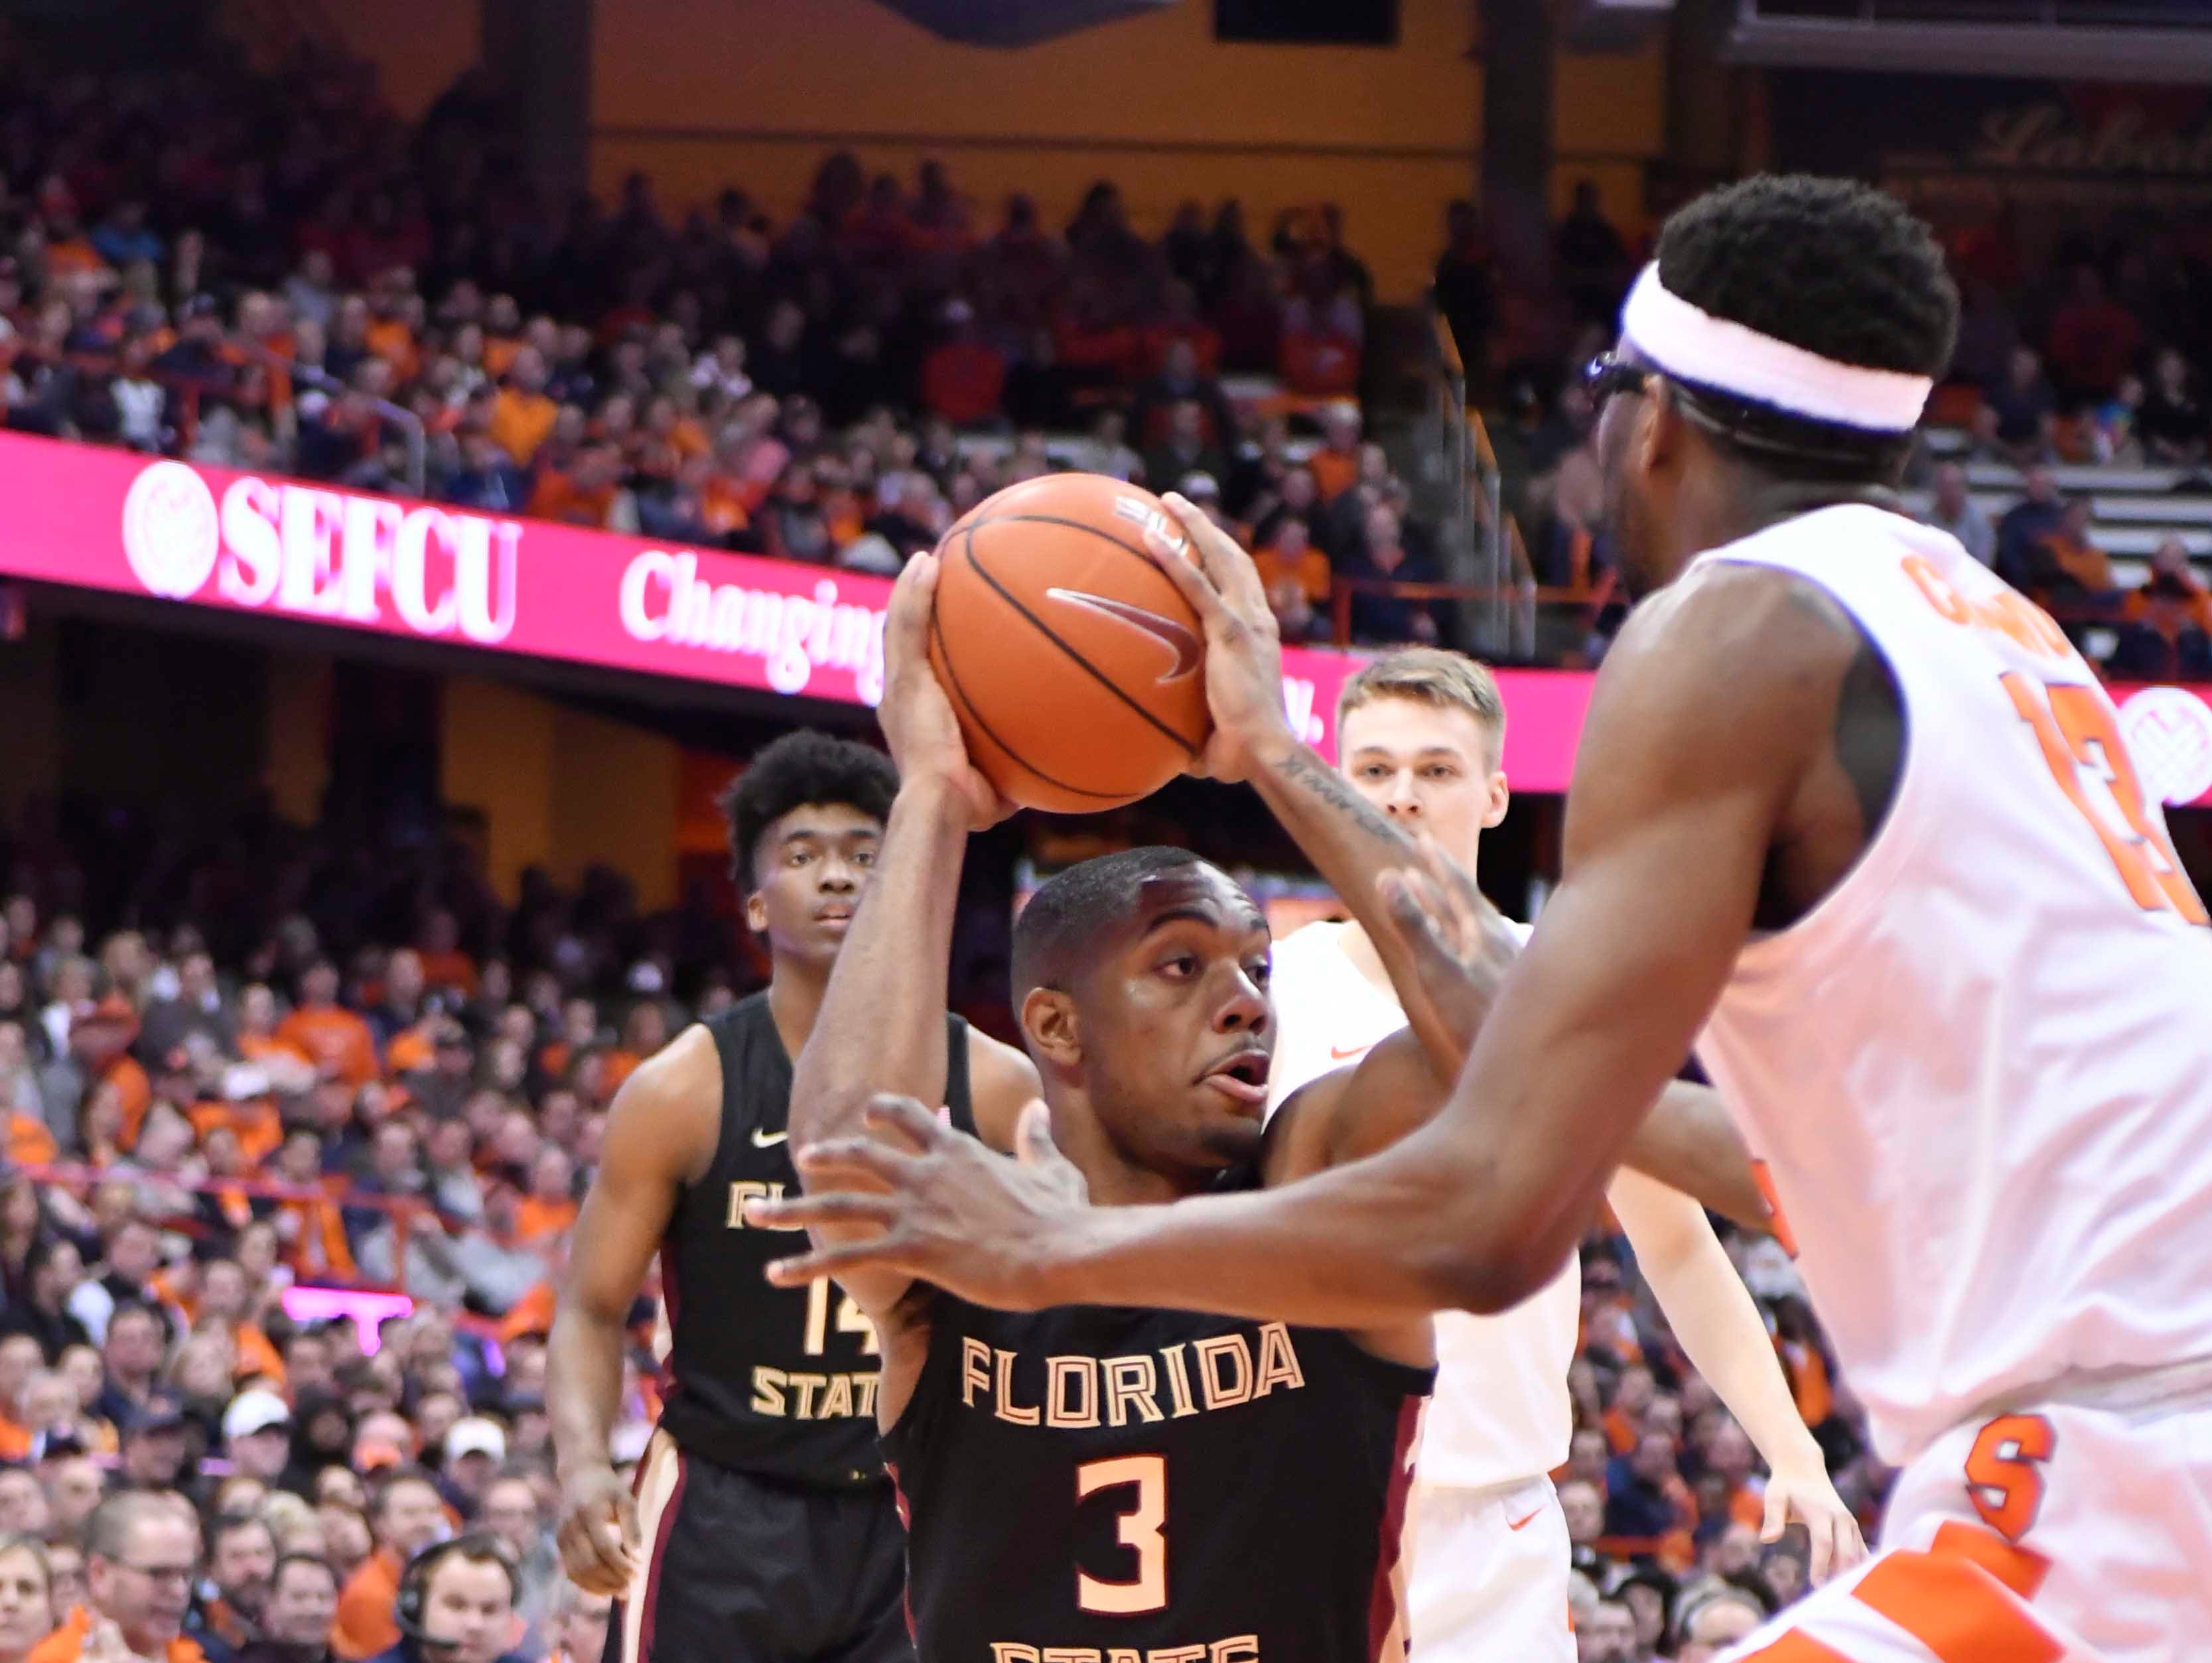 Feb 5, 2019; Syracuse, NY, USA; Florida State Seminoles guard Trent Forrest (3) looks to make a move with the ball as Syracuse Orange center Paschal Chukwu (13) defends in the first half at the Carrier Dome. Mandatory Credit: Mark Konezny-USA TODAY Sports